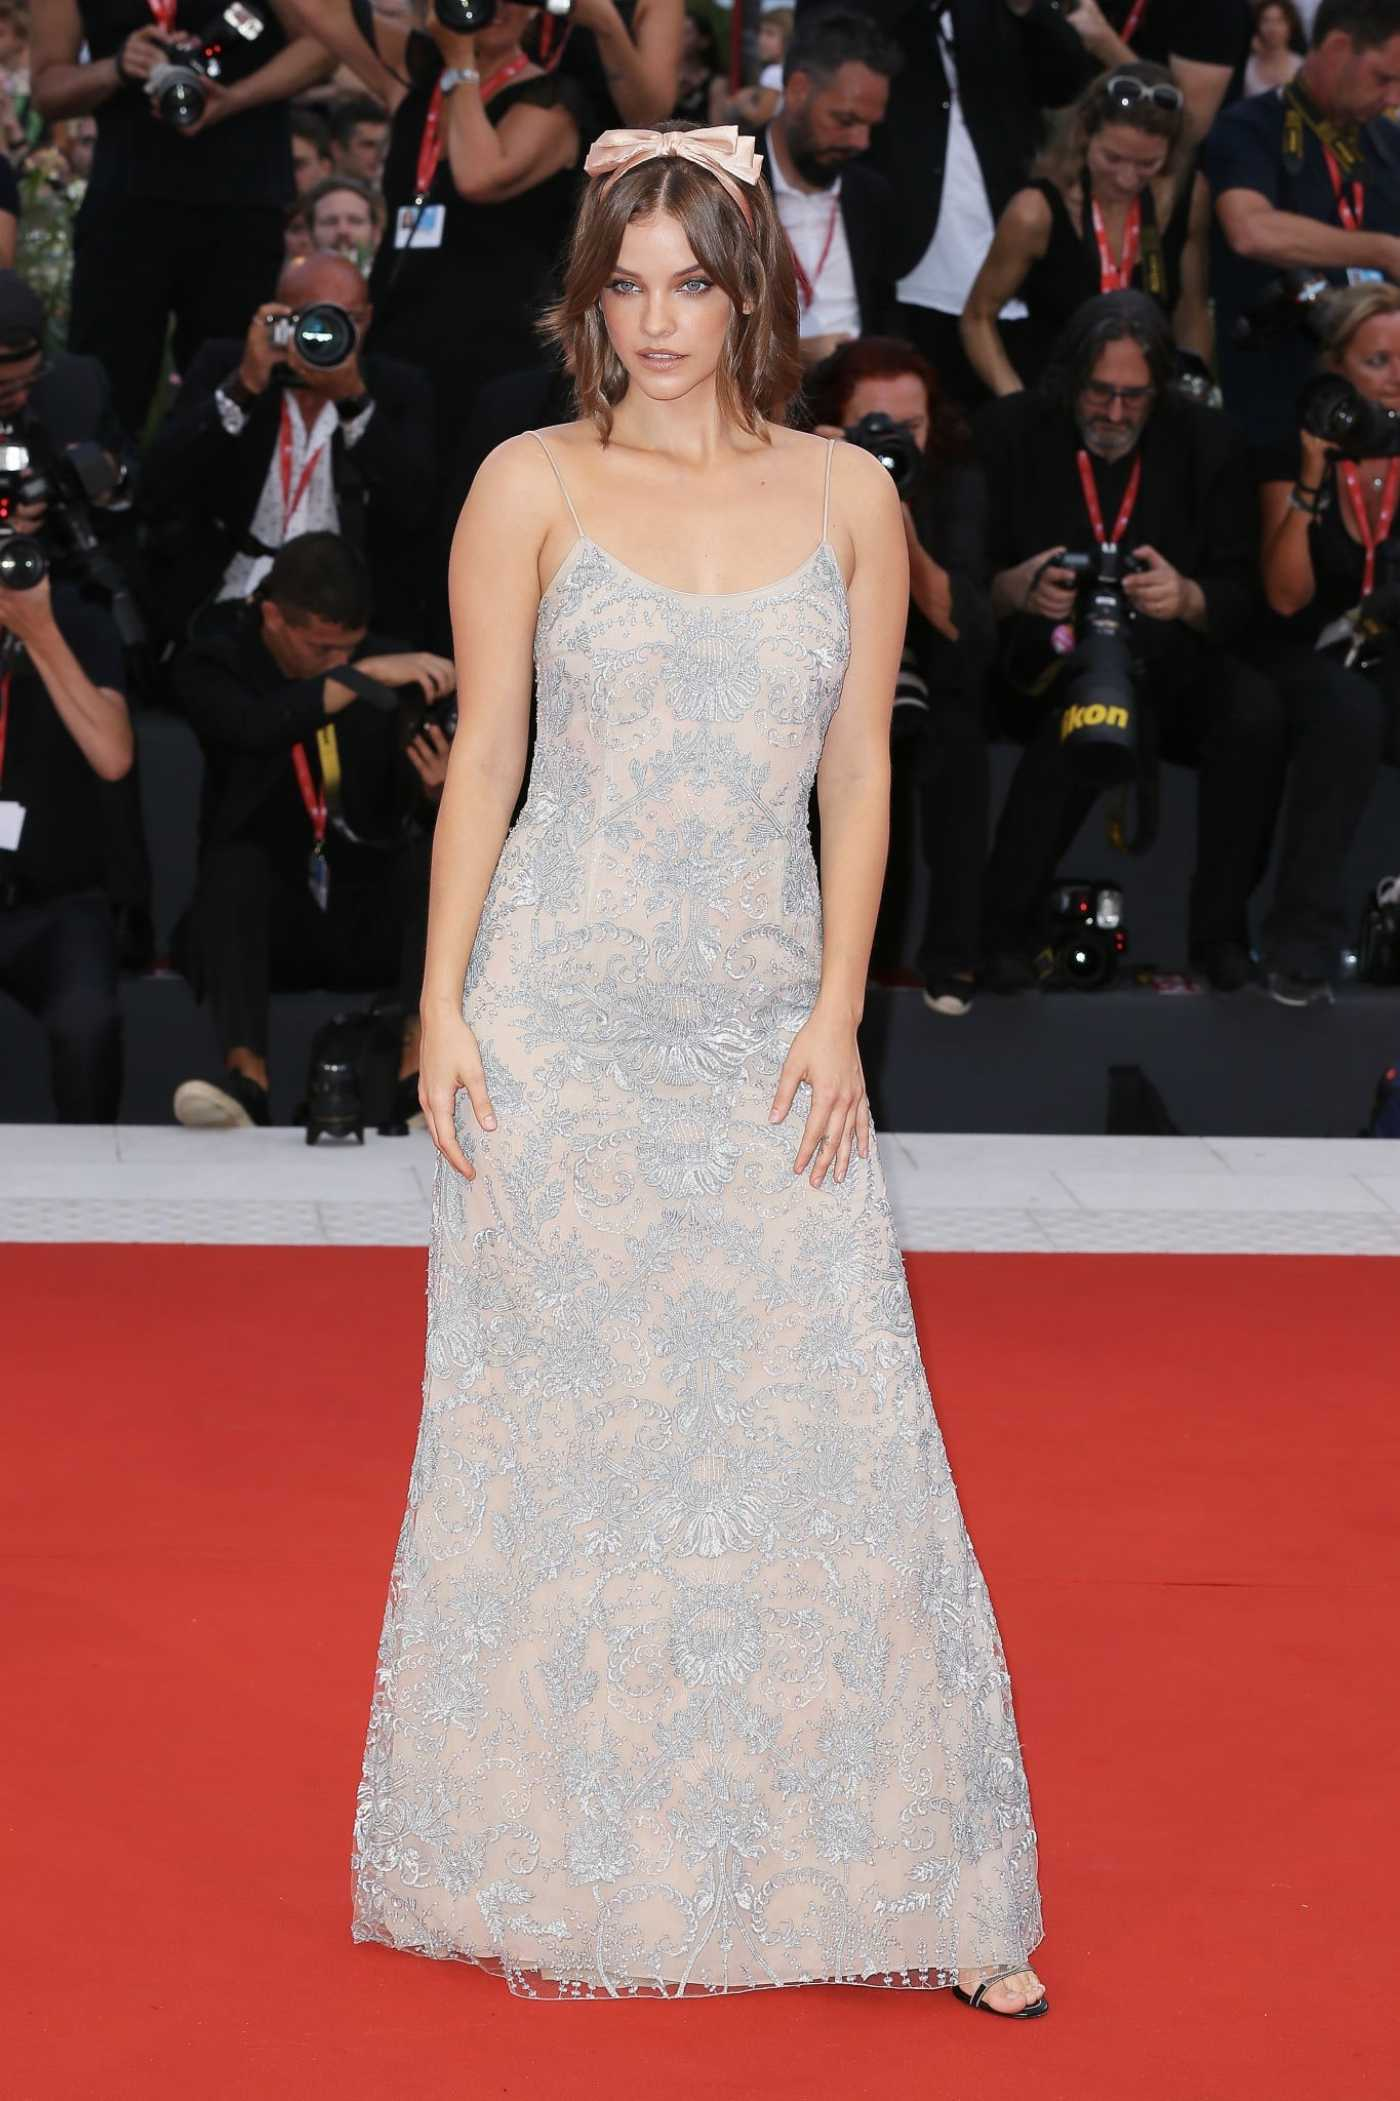 Barbara Palvin Attends Joker Screening During the 76th Venice Film Festival in Venice 08/31/2019